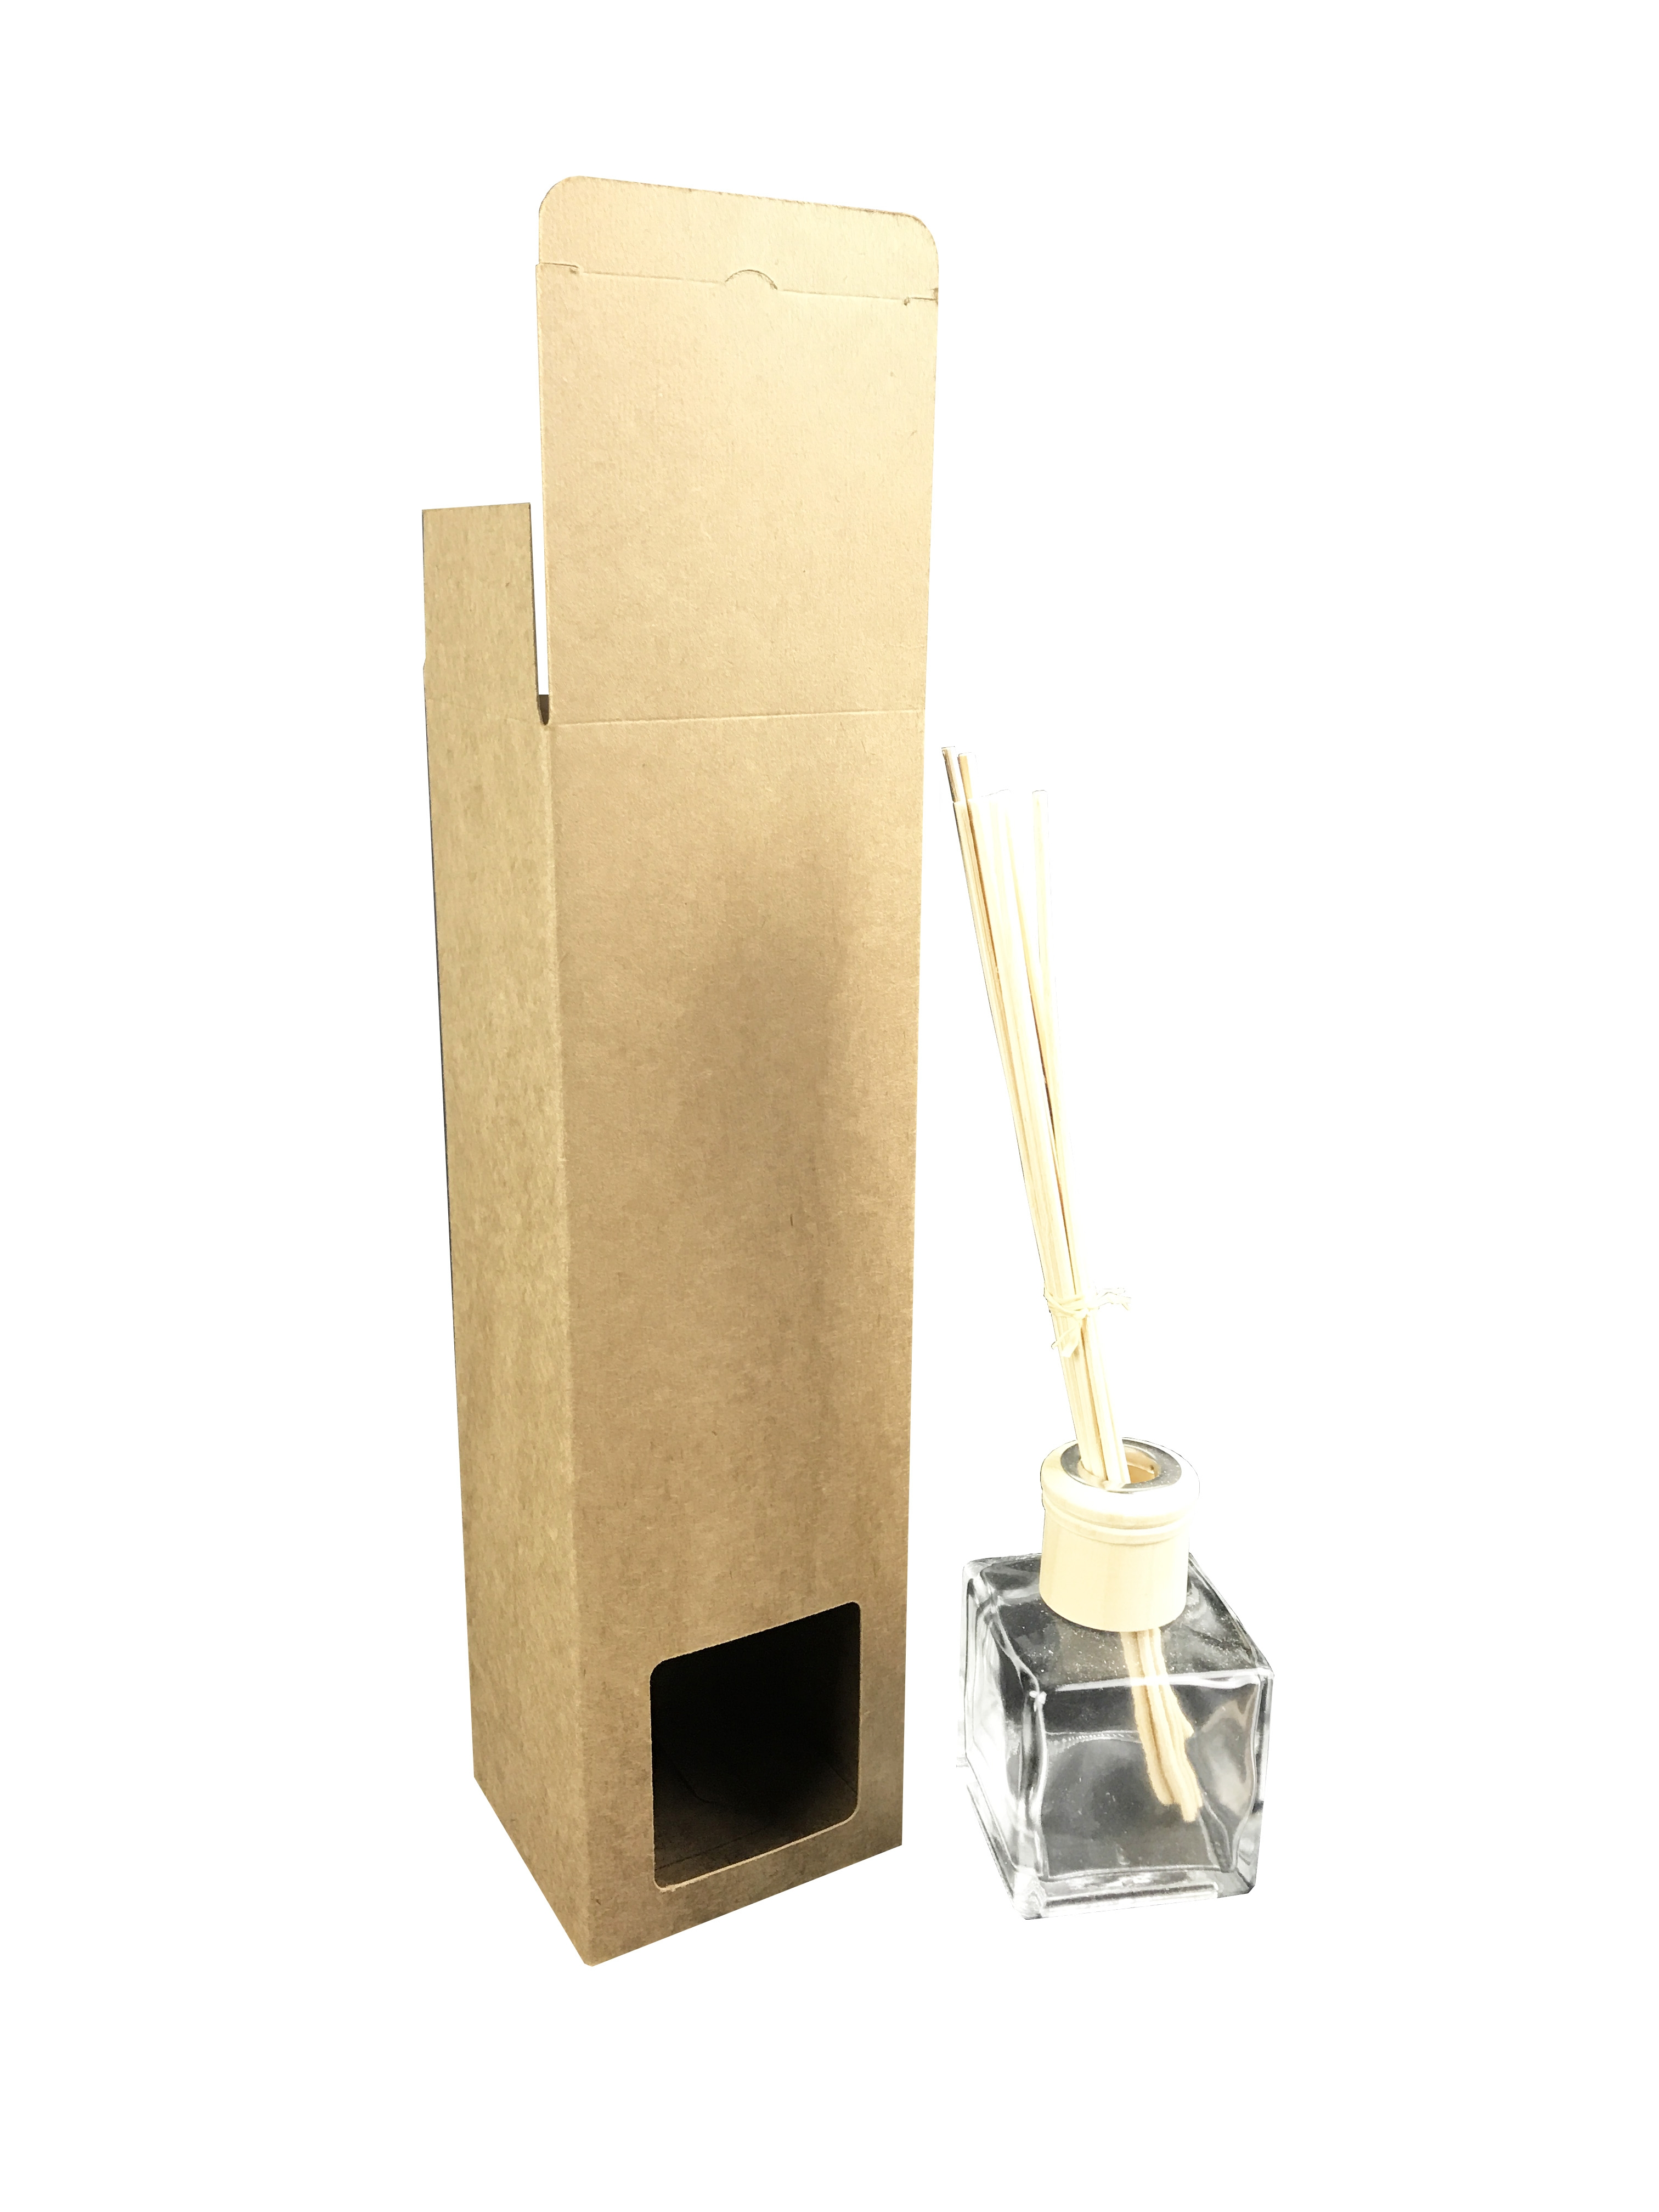 Brown Kraft Reed Diffuser Box Supplies For Candles